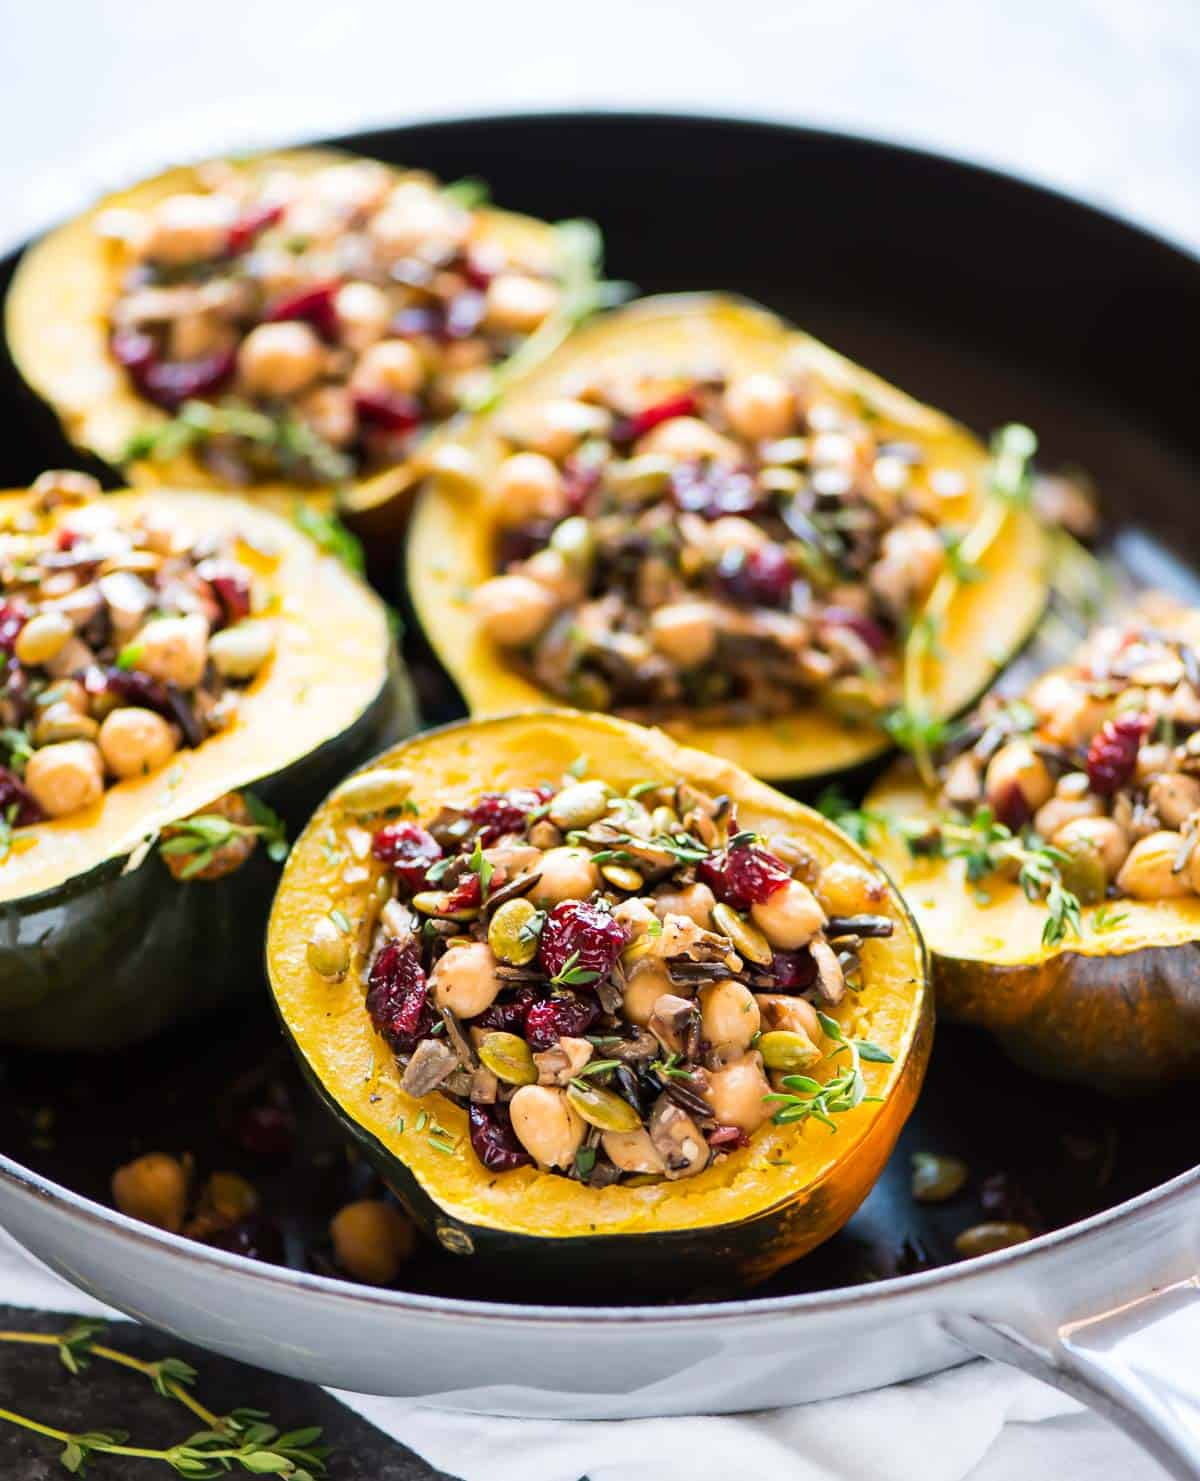 Five acorn squash stuffed with wild rice, cranberry, mushroom, and chickpeas in pressure cooker